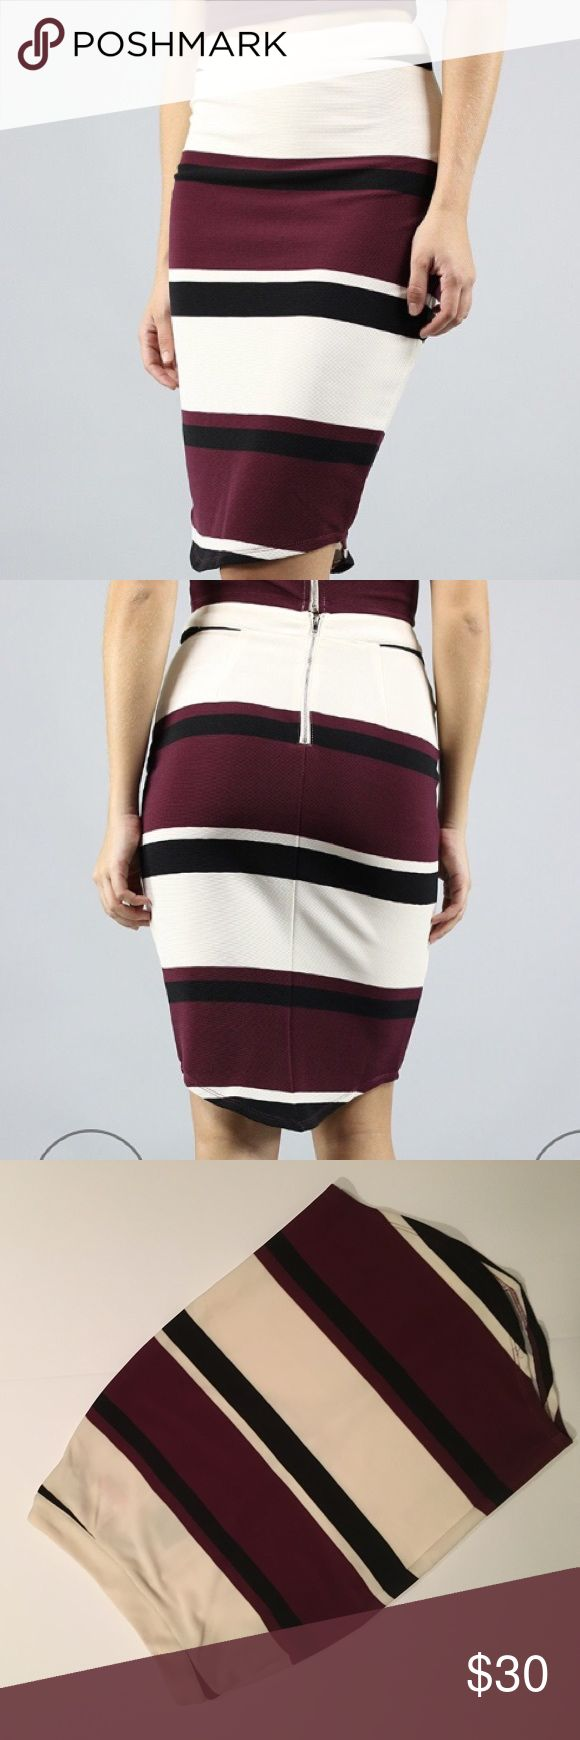 J.O.A. Just one answer striped body con skirt NWT J.O.A. Skirts